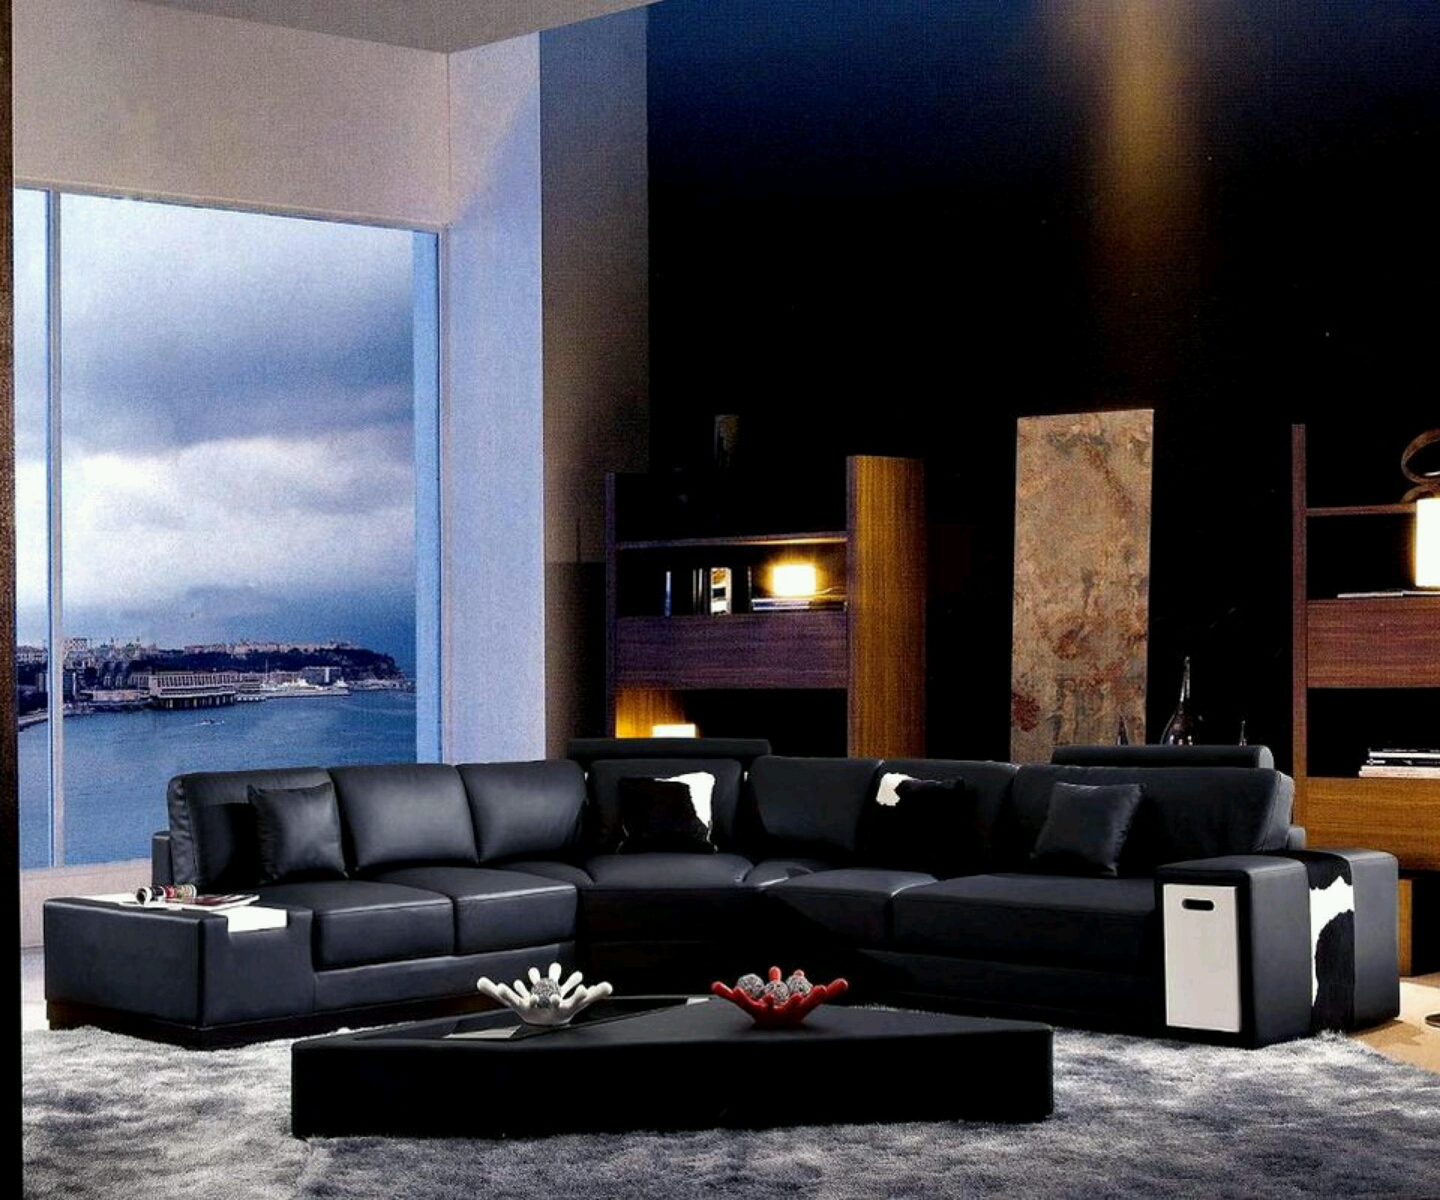 Modern Luxury Living Room photo - 5